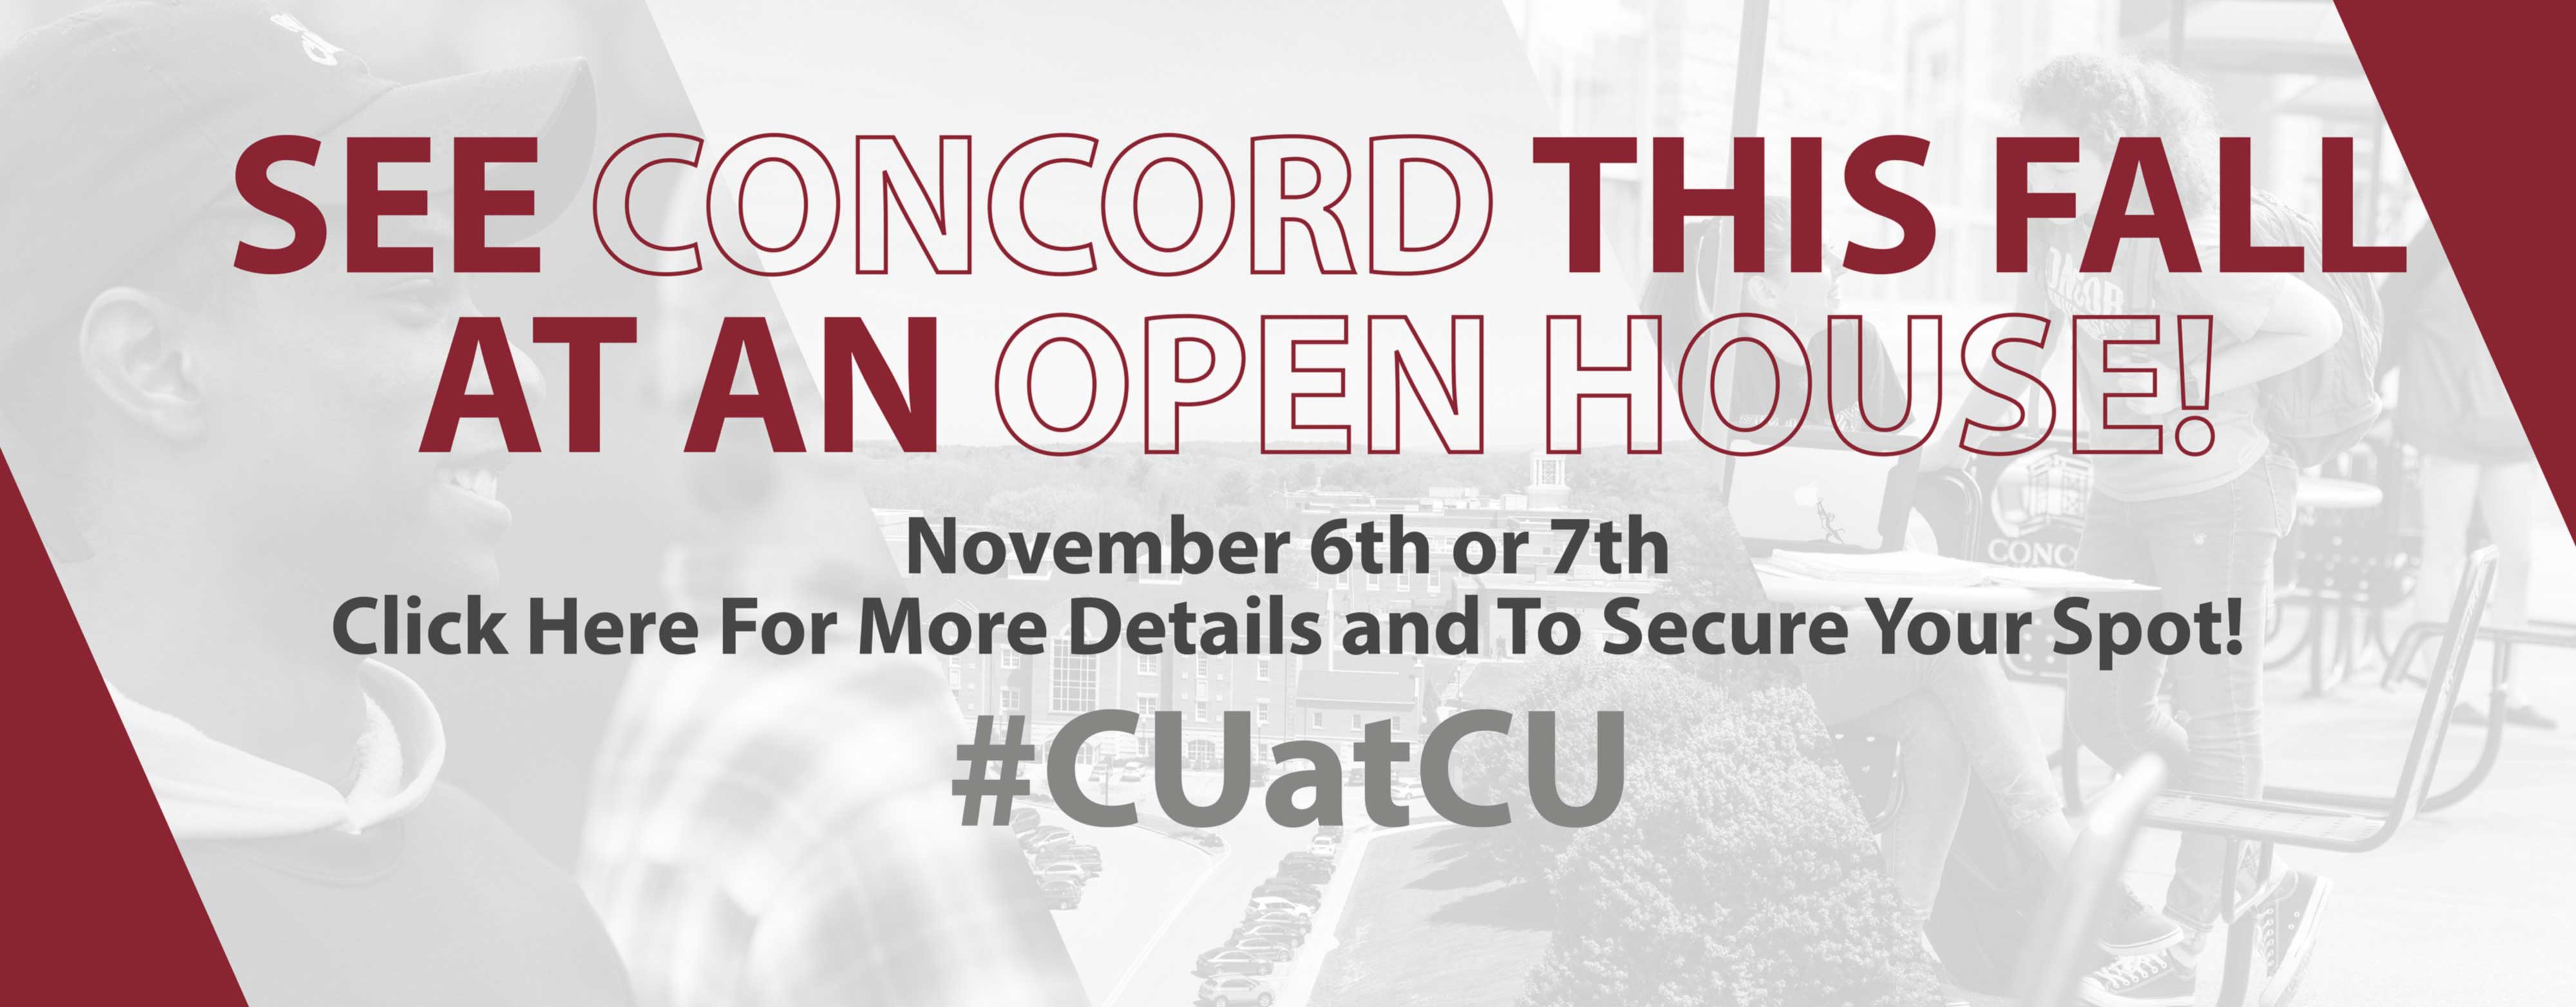 Come see concord at the Fall Open House on October 16th and 17th or on November 6th or 7th!